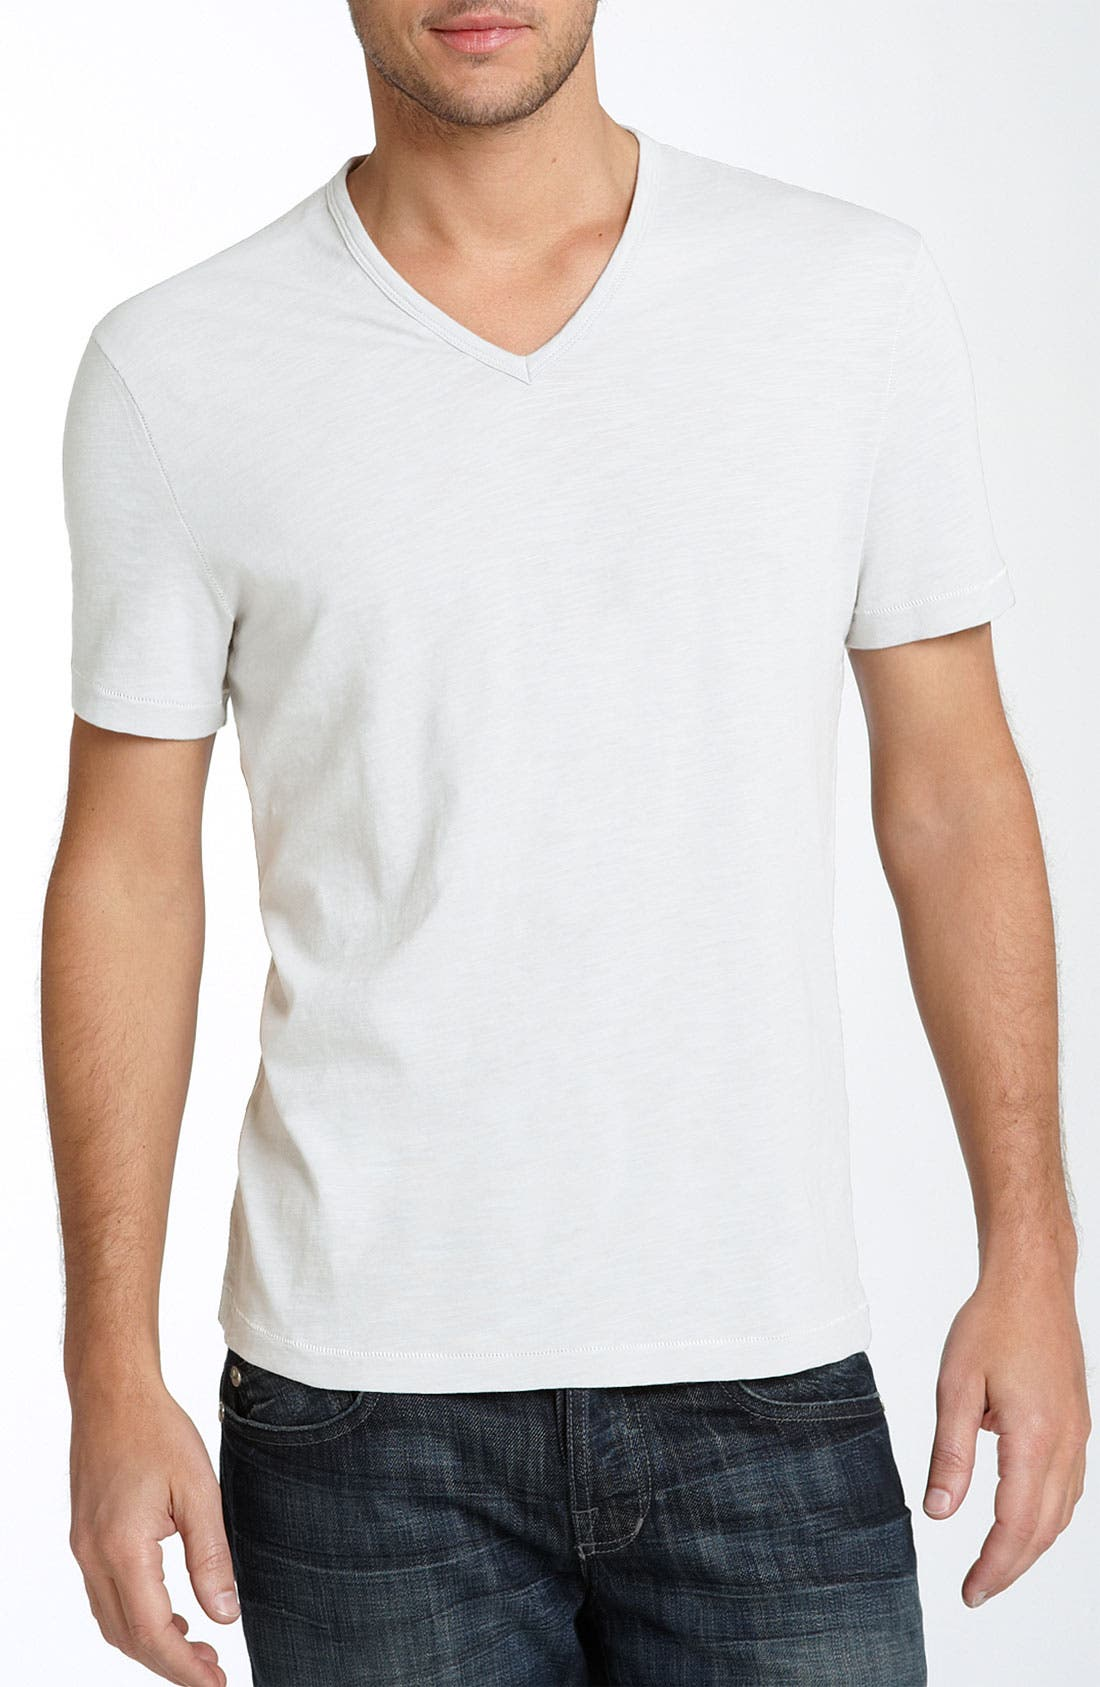 Alternate Image 1 Selected - John Varvatos Star USA Trim Fit Slubbed V-Neck T-Shirt (Men)